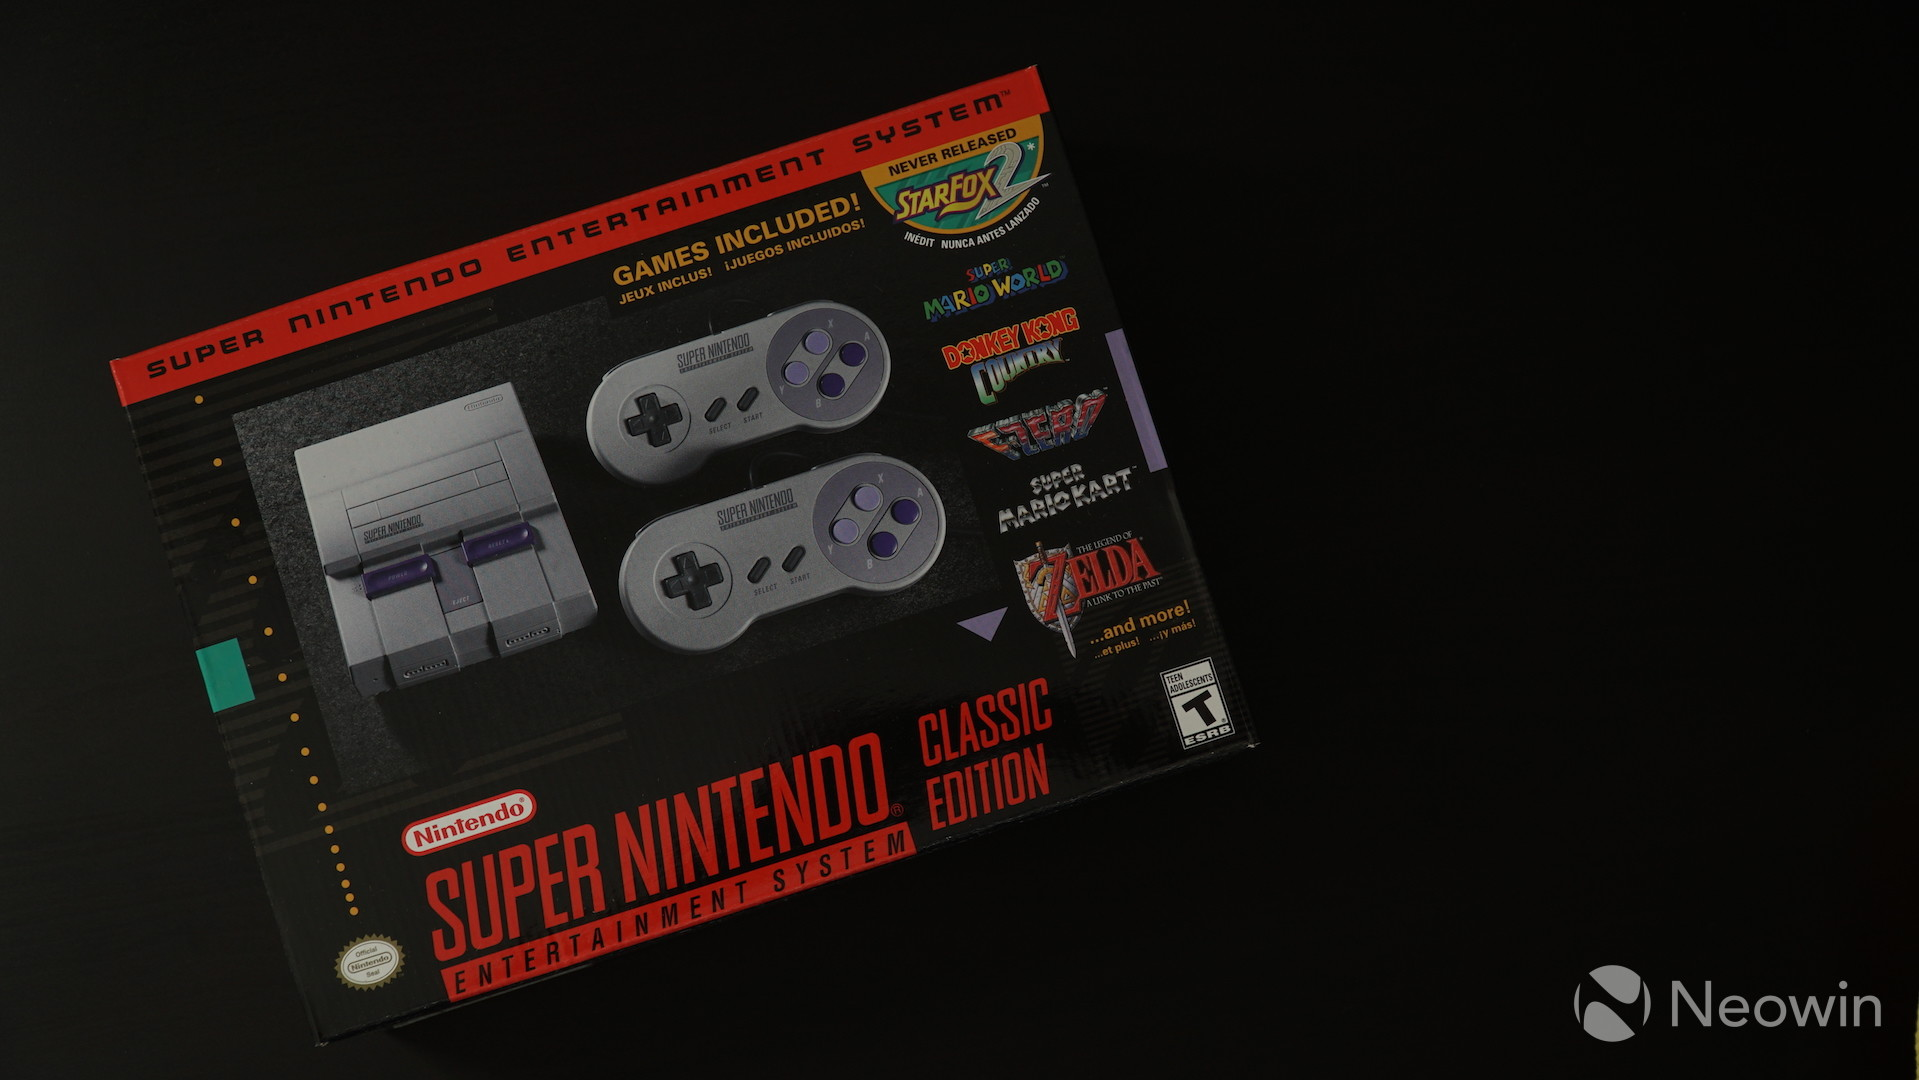 Modded SNES Classic Editions are showing up on eBay for $250